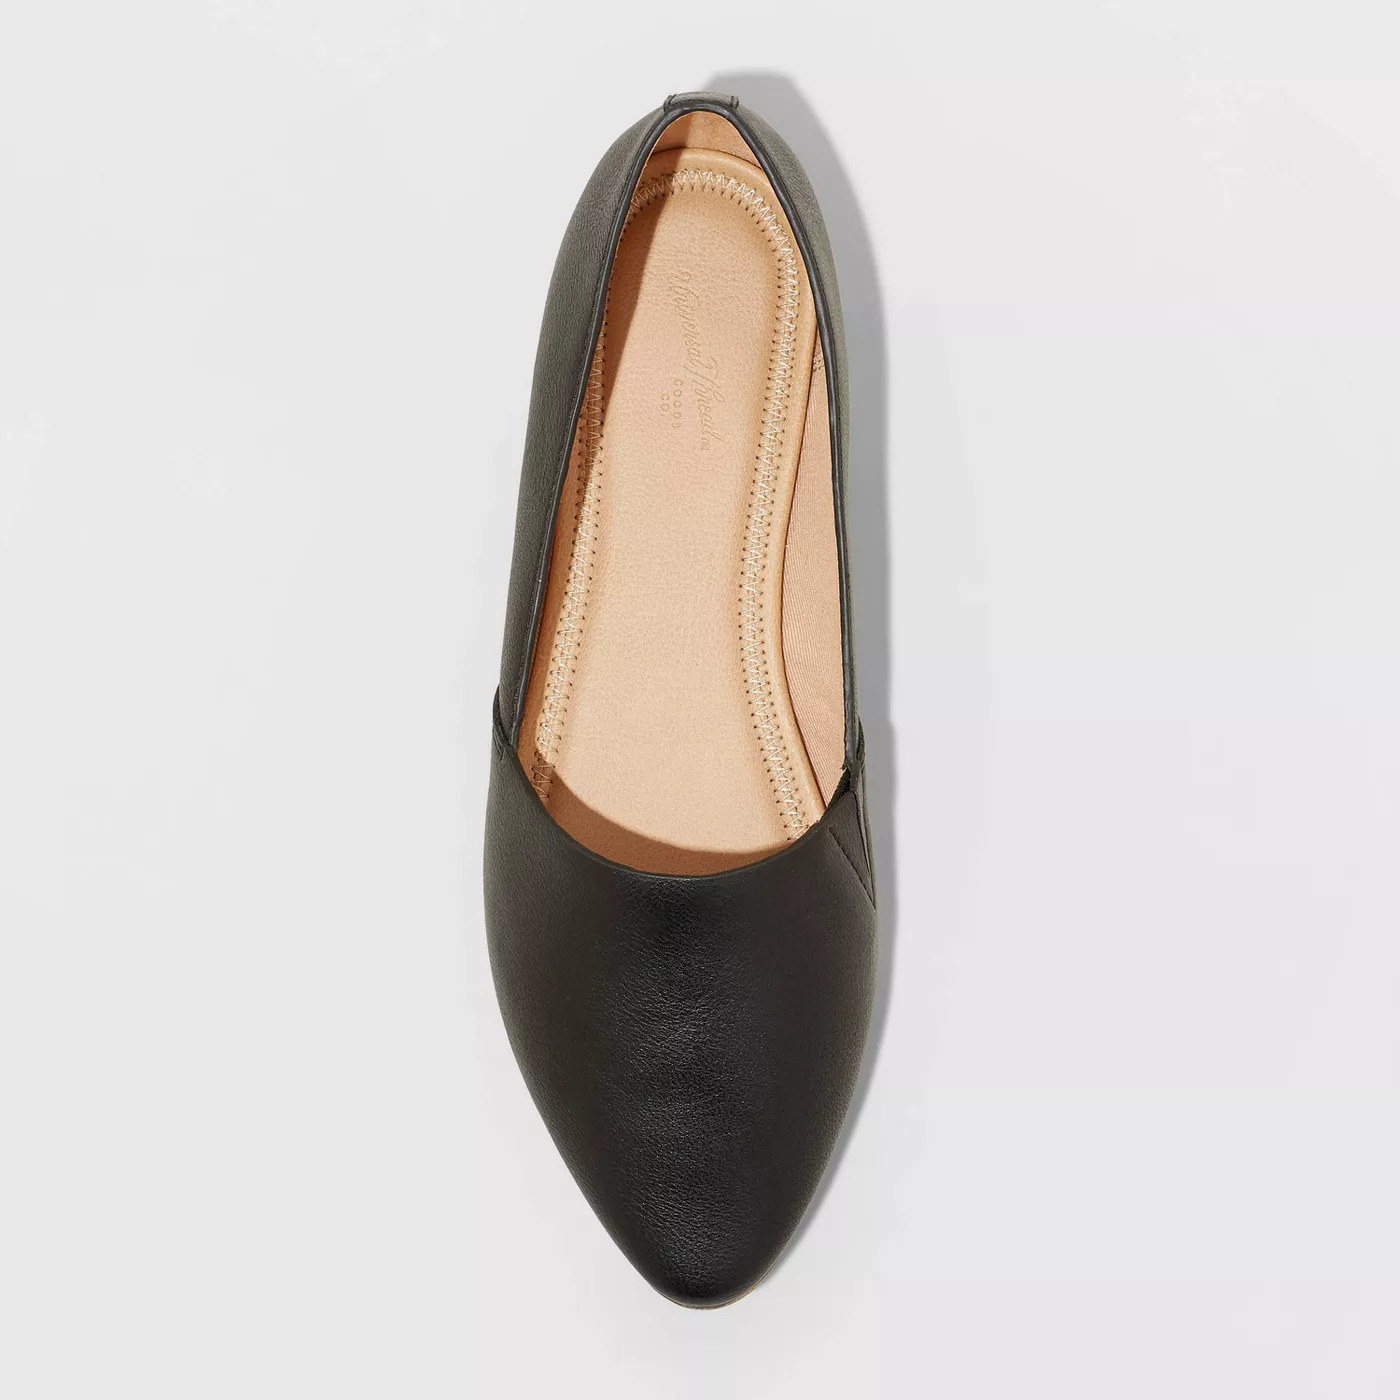 A black faux leather flat with a pointed toe and tan soles